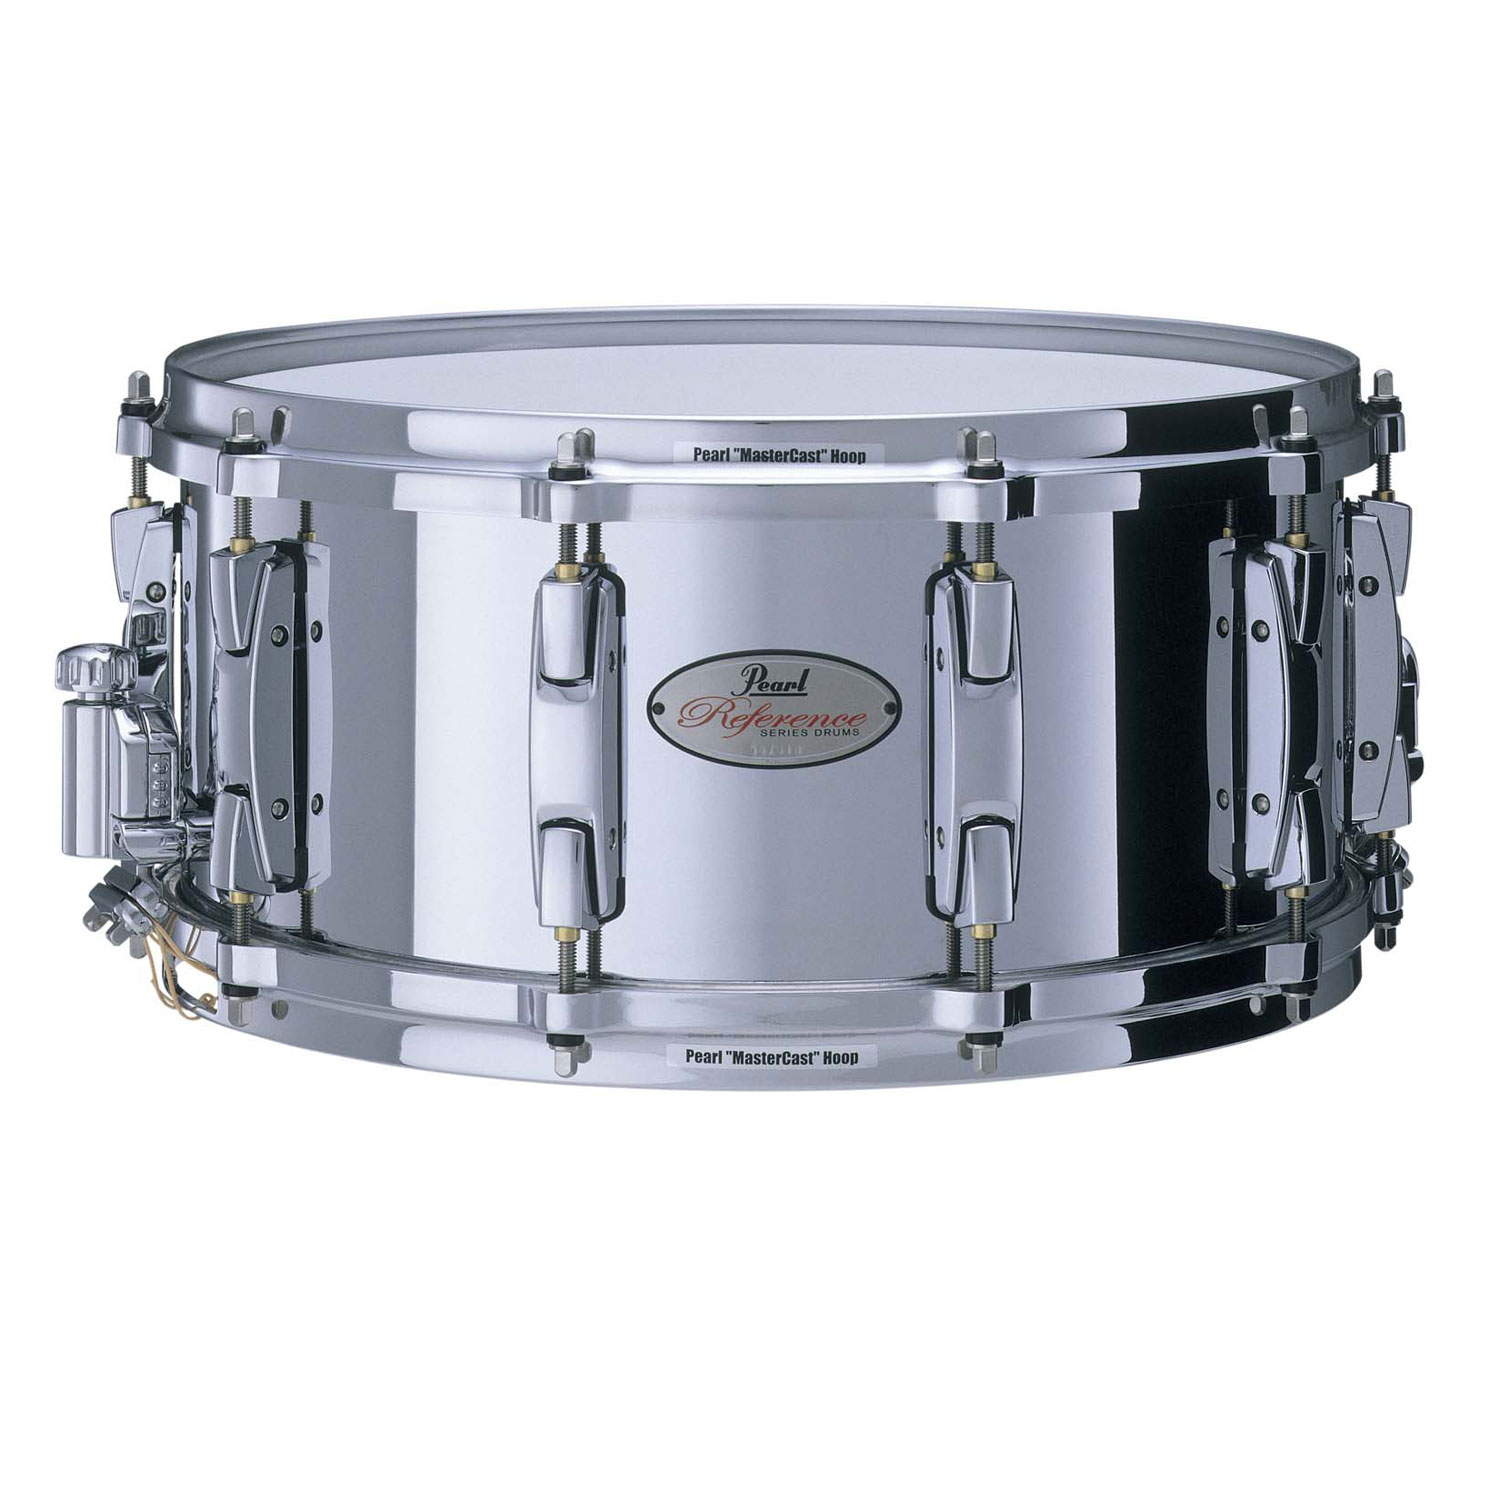 "Pearl 14"" x 6.5"" 3mm Cast Steel Snare Drum"